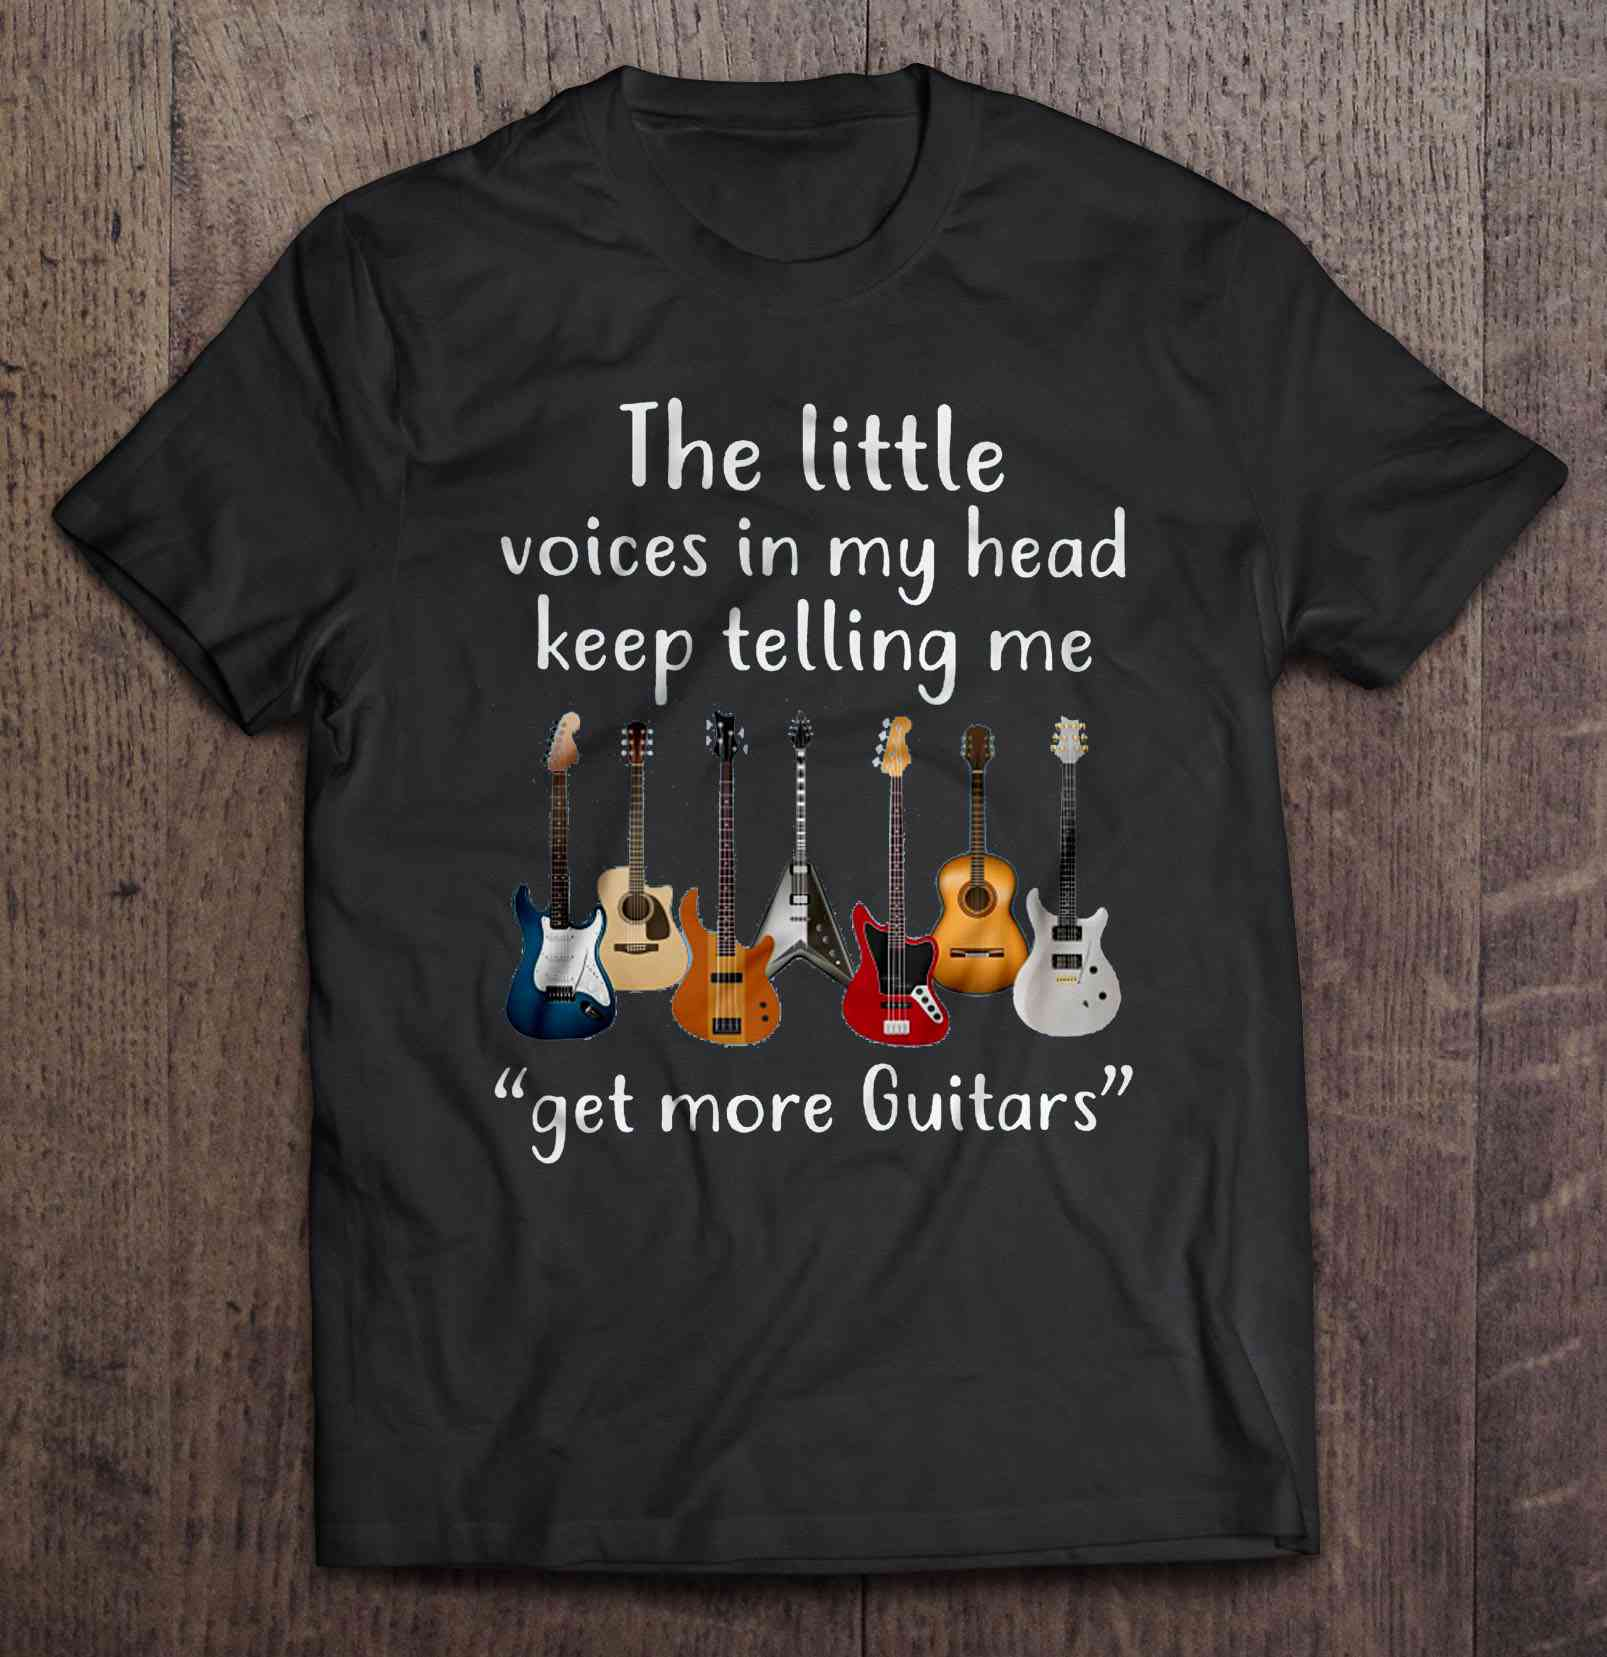 The Little Voices In My Head Keep Telling Me Get More Guitars Black Version2 Tshirts